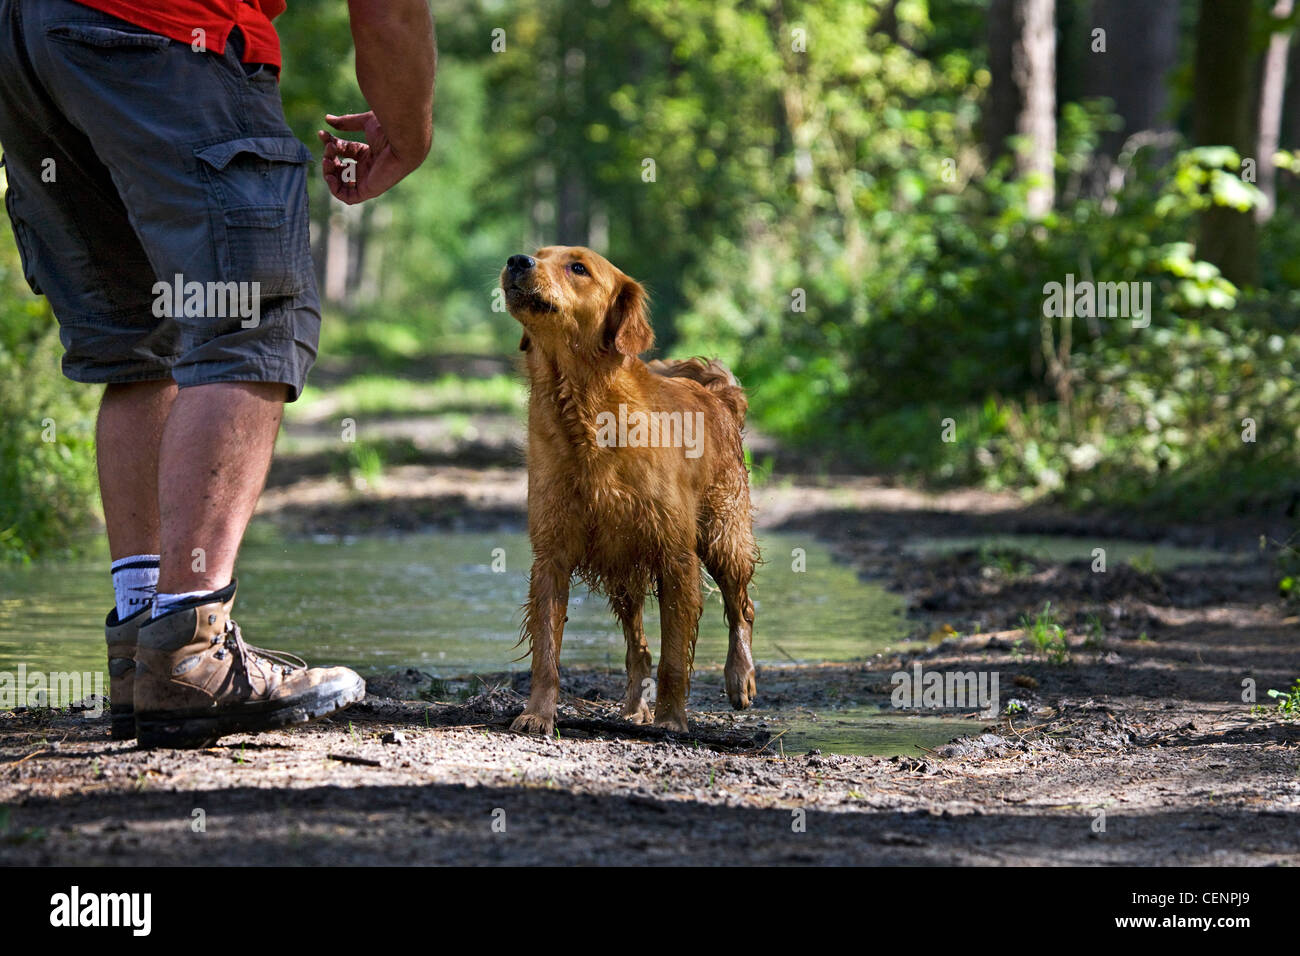 Golden retriever dog with wet fur and man going for a walk on muddy path with puddle in forest, Belgium - Stock Image